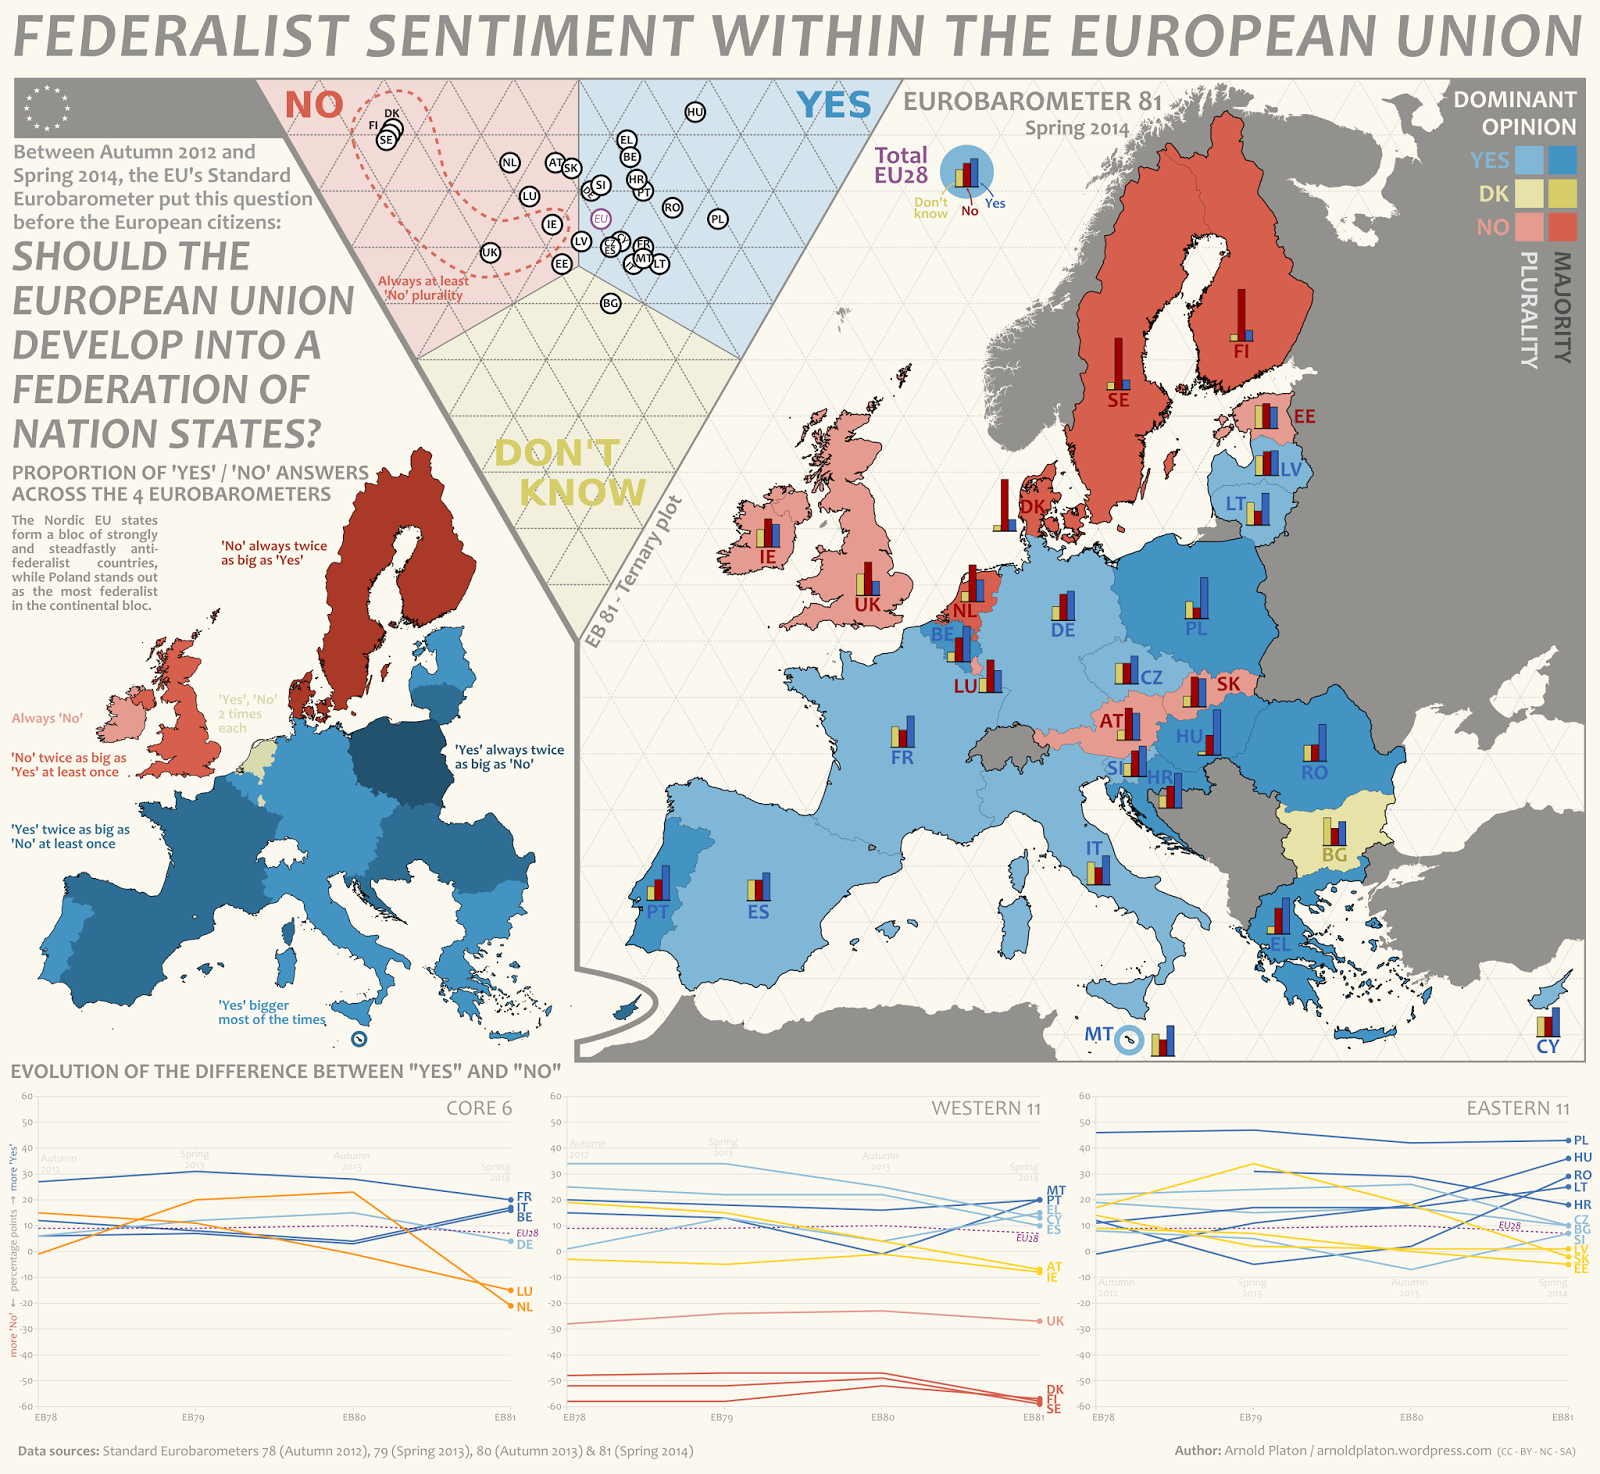 Federalist sentiment within the European Union